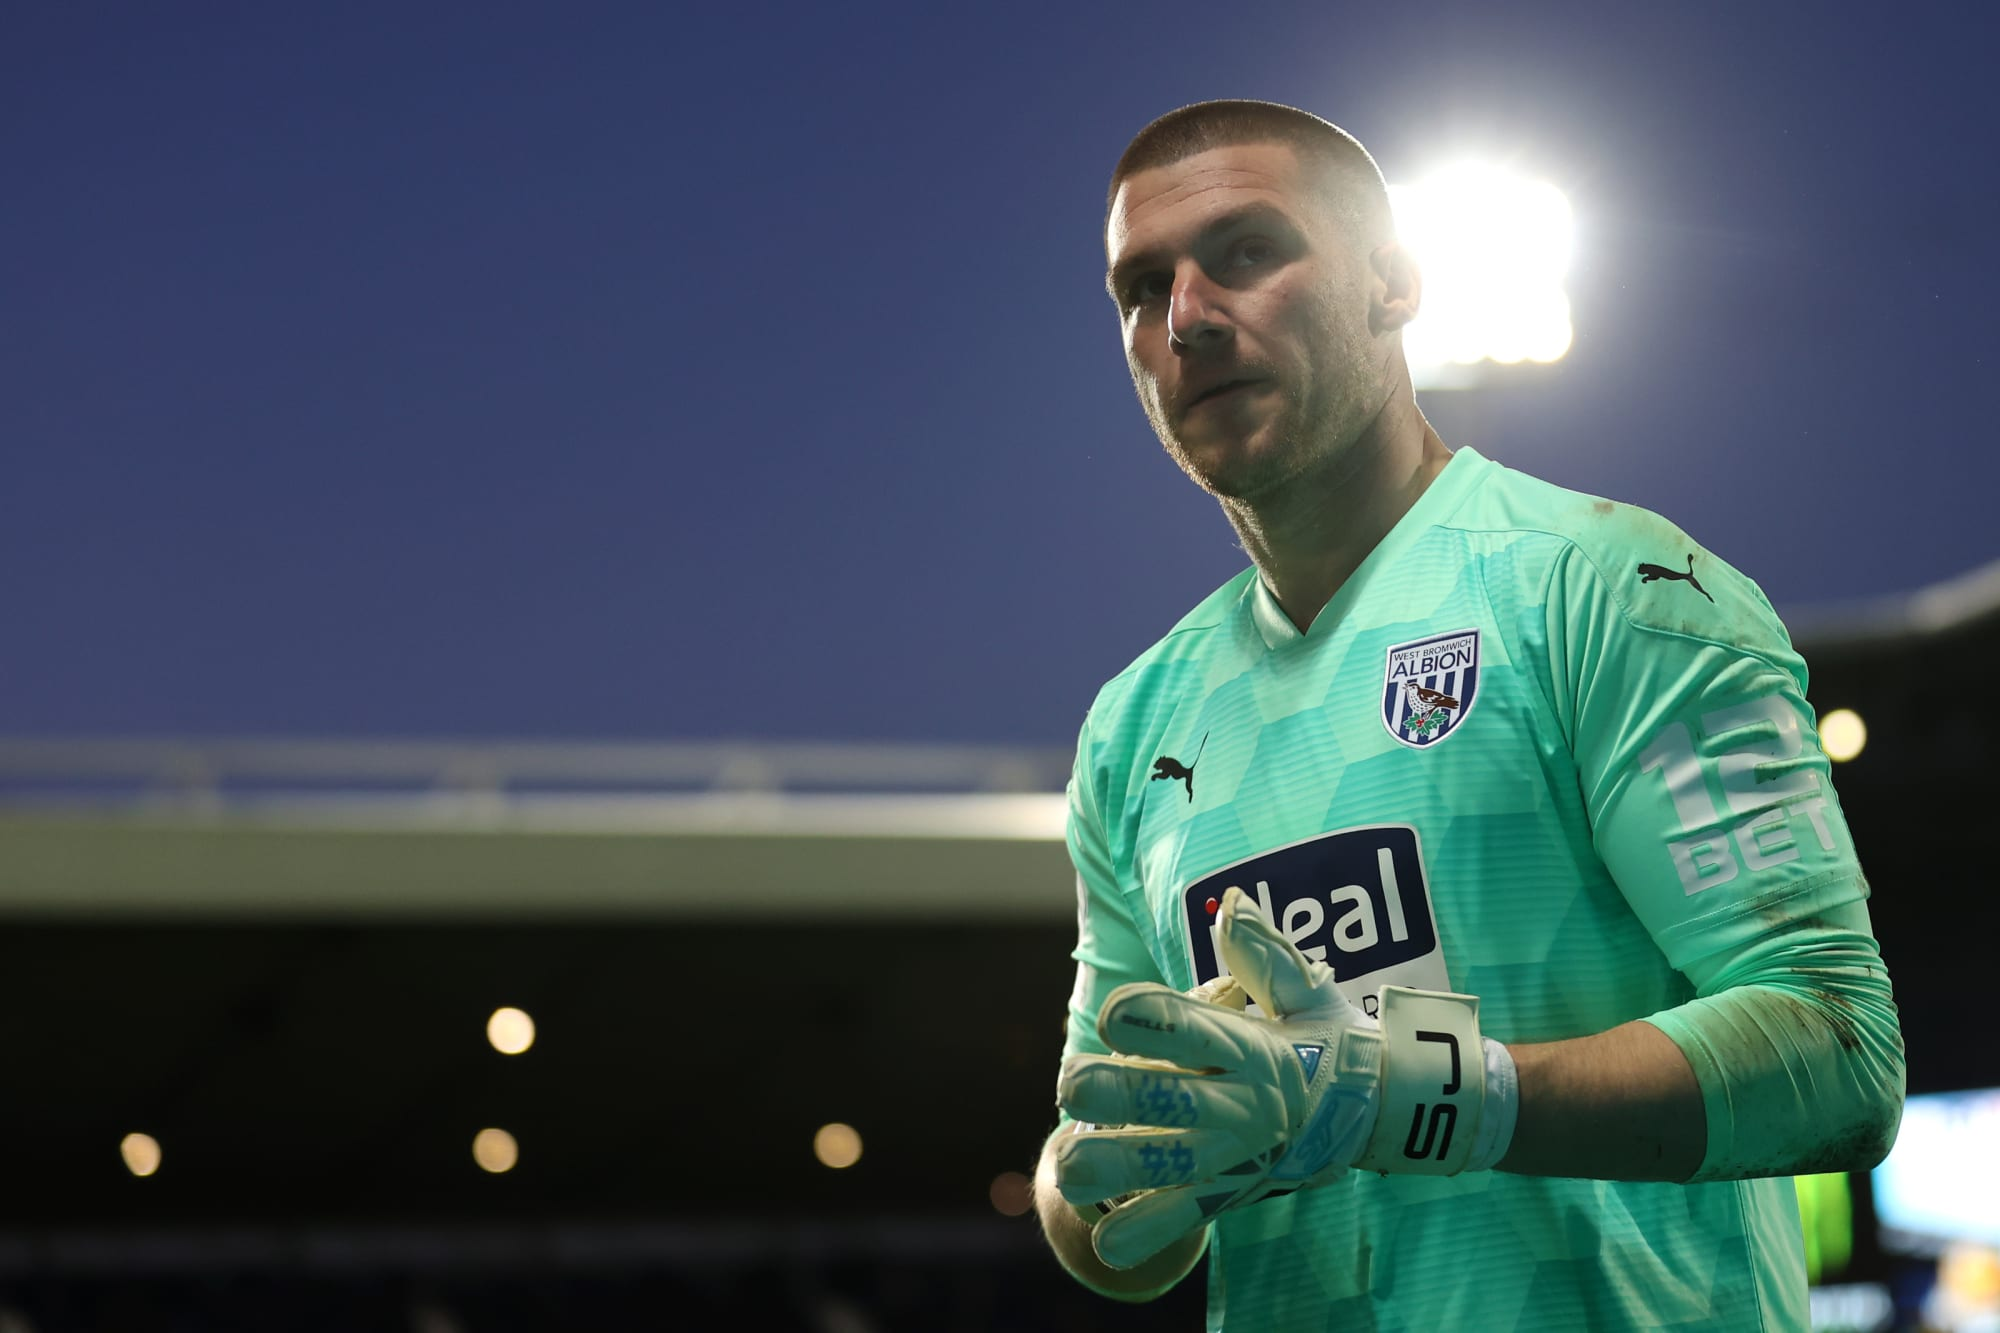 Arsenal: 4 goalkeepers to target in summer transfer window